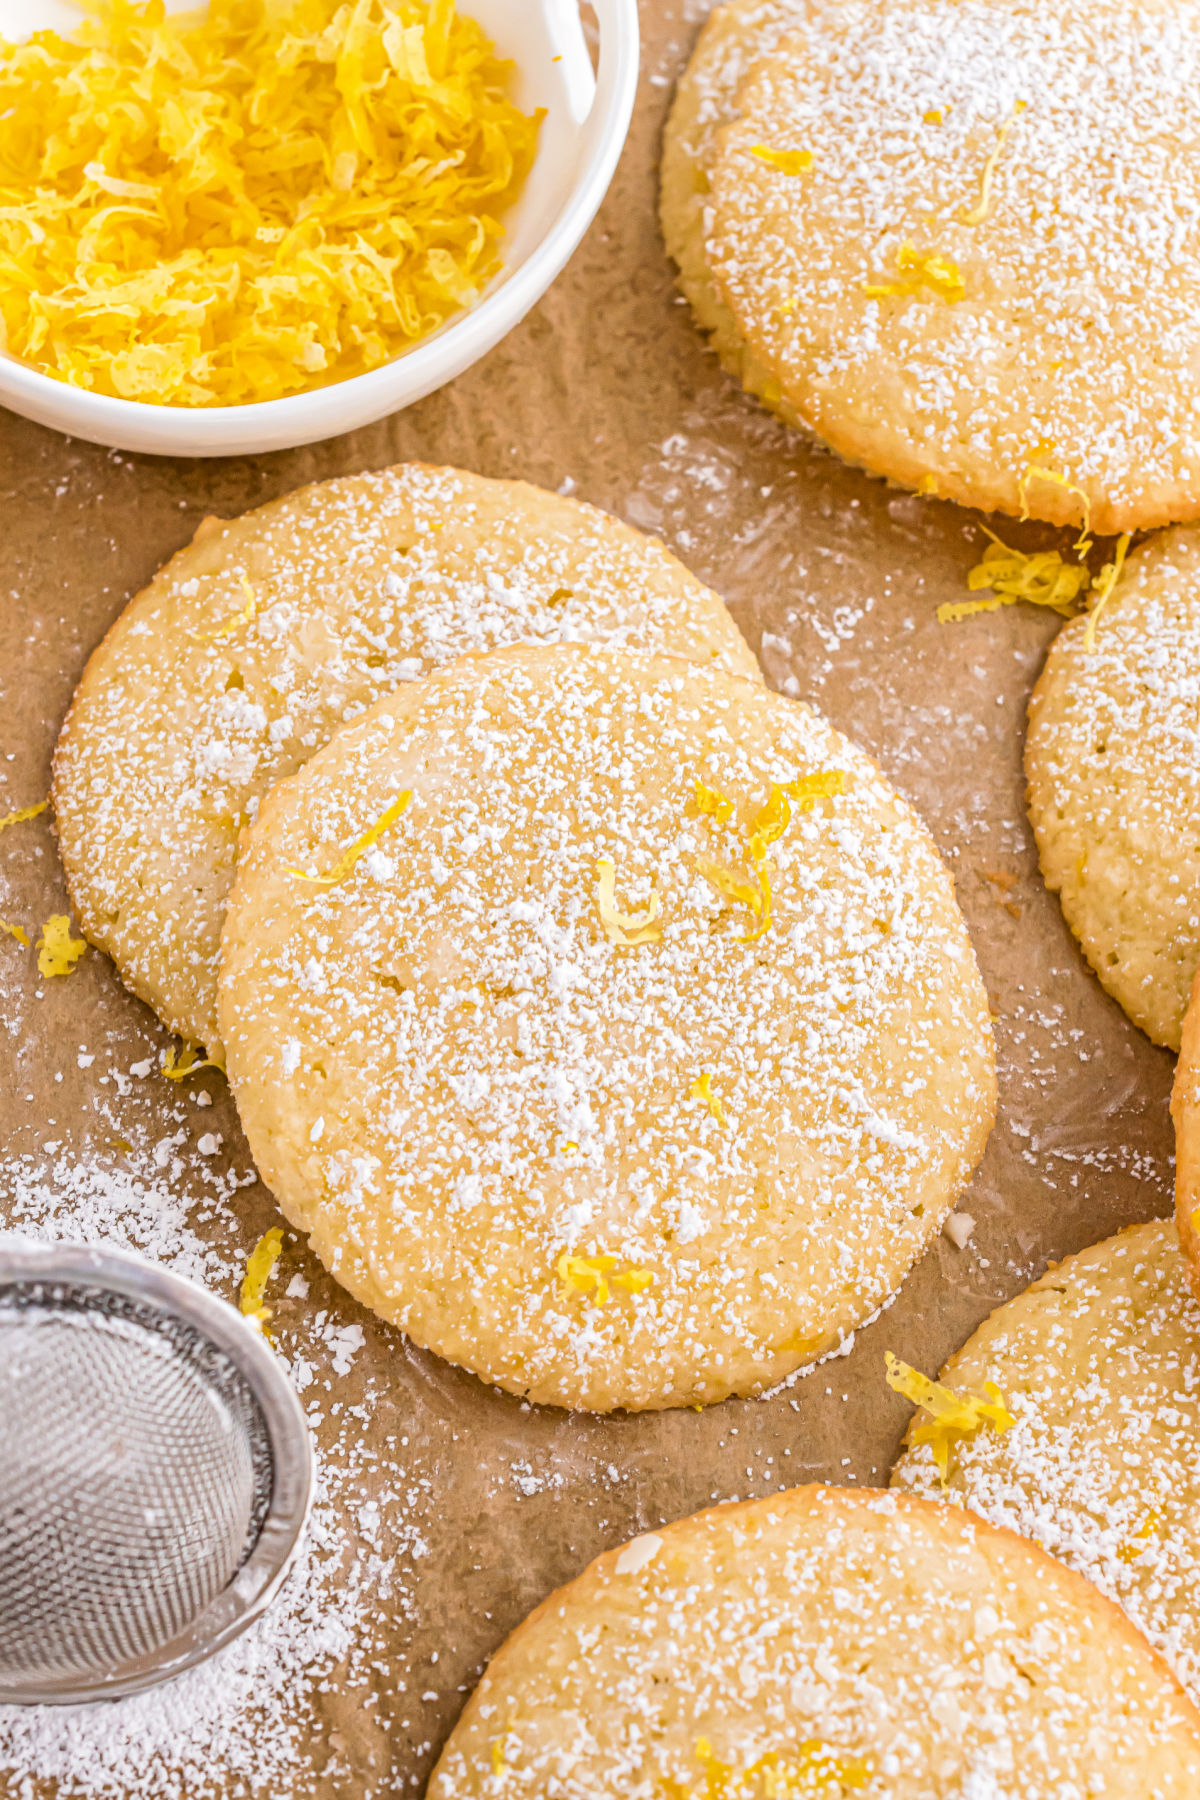 Lemon cookies on parchment paper and dusted with powdered sugar.